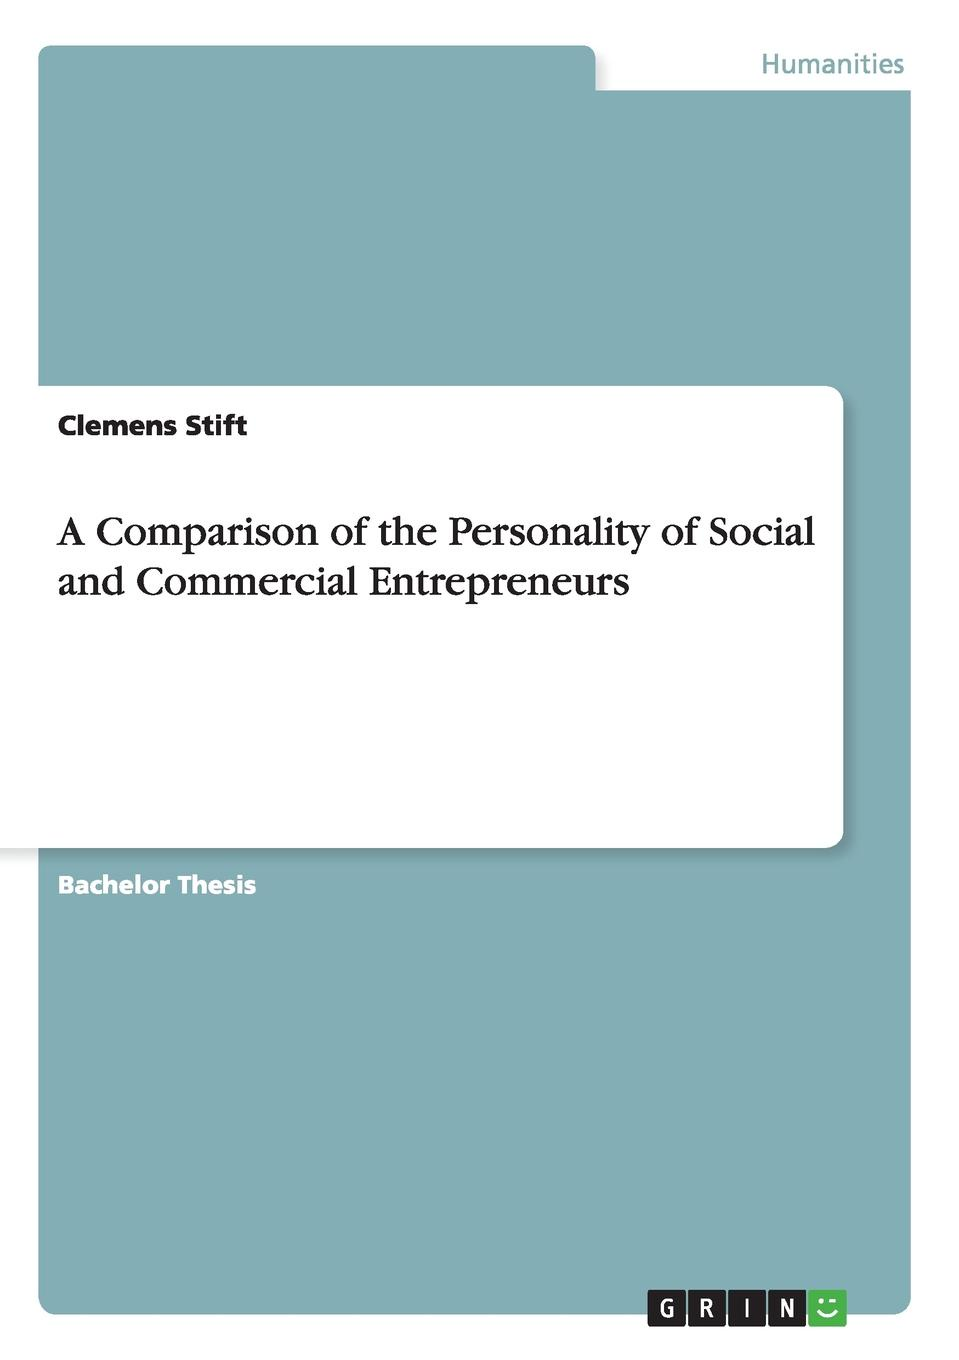 Clemens Stift A Comparison of the Personality of Social and Commercial Entrepreneurs